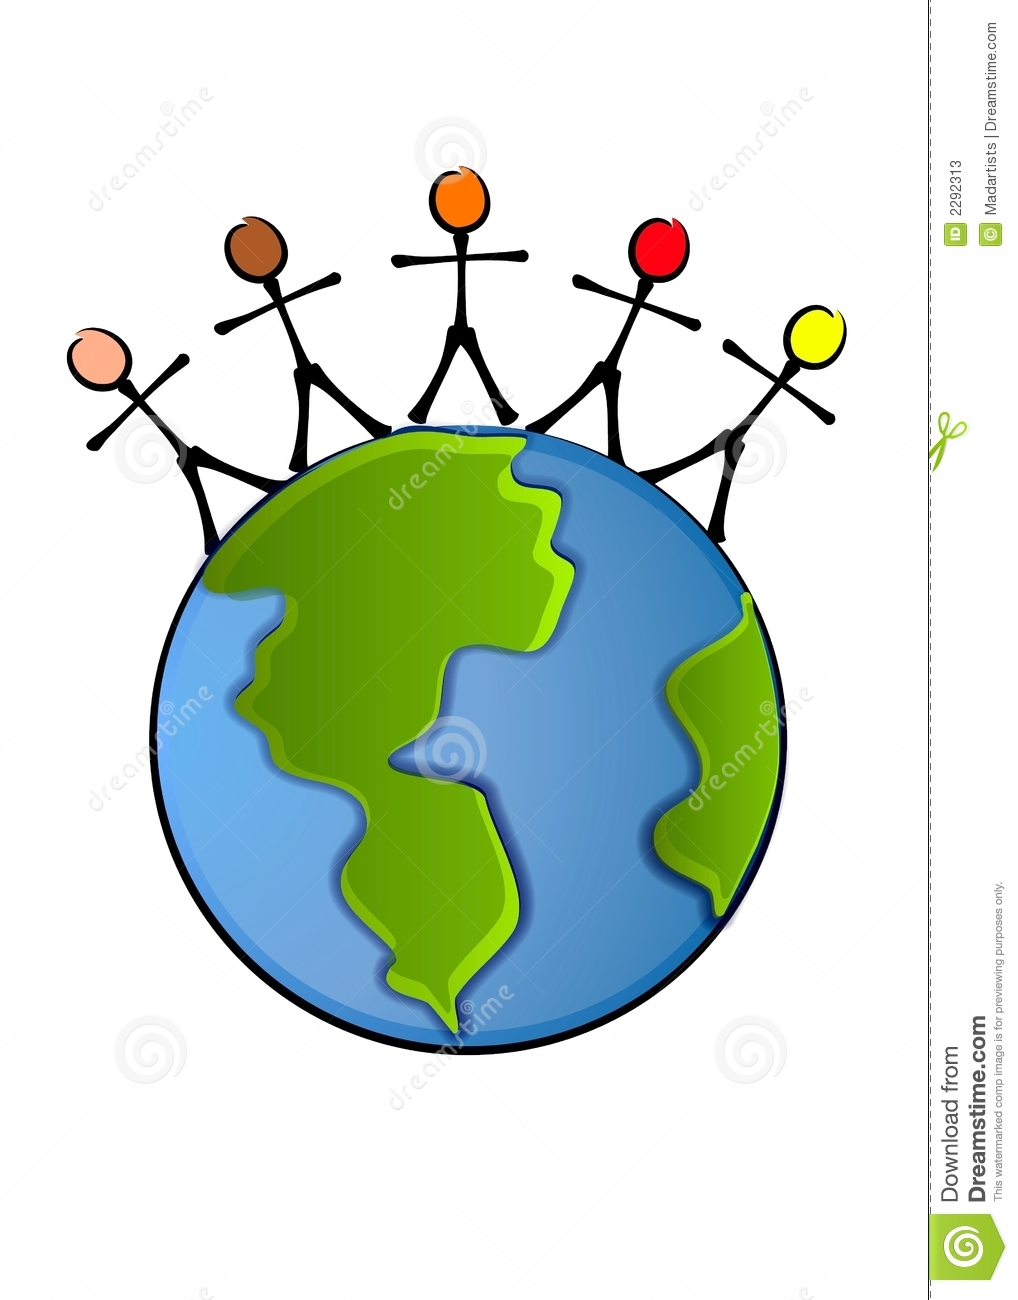 world peace earth clip art stock illustration illustration of rh dreamstime com clip art world map clip art world peace